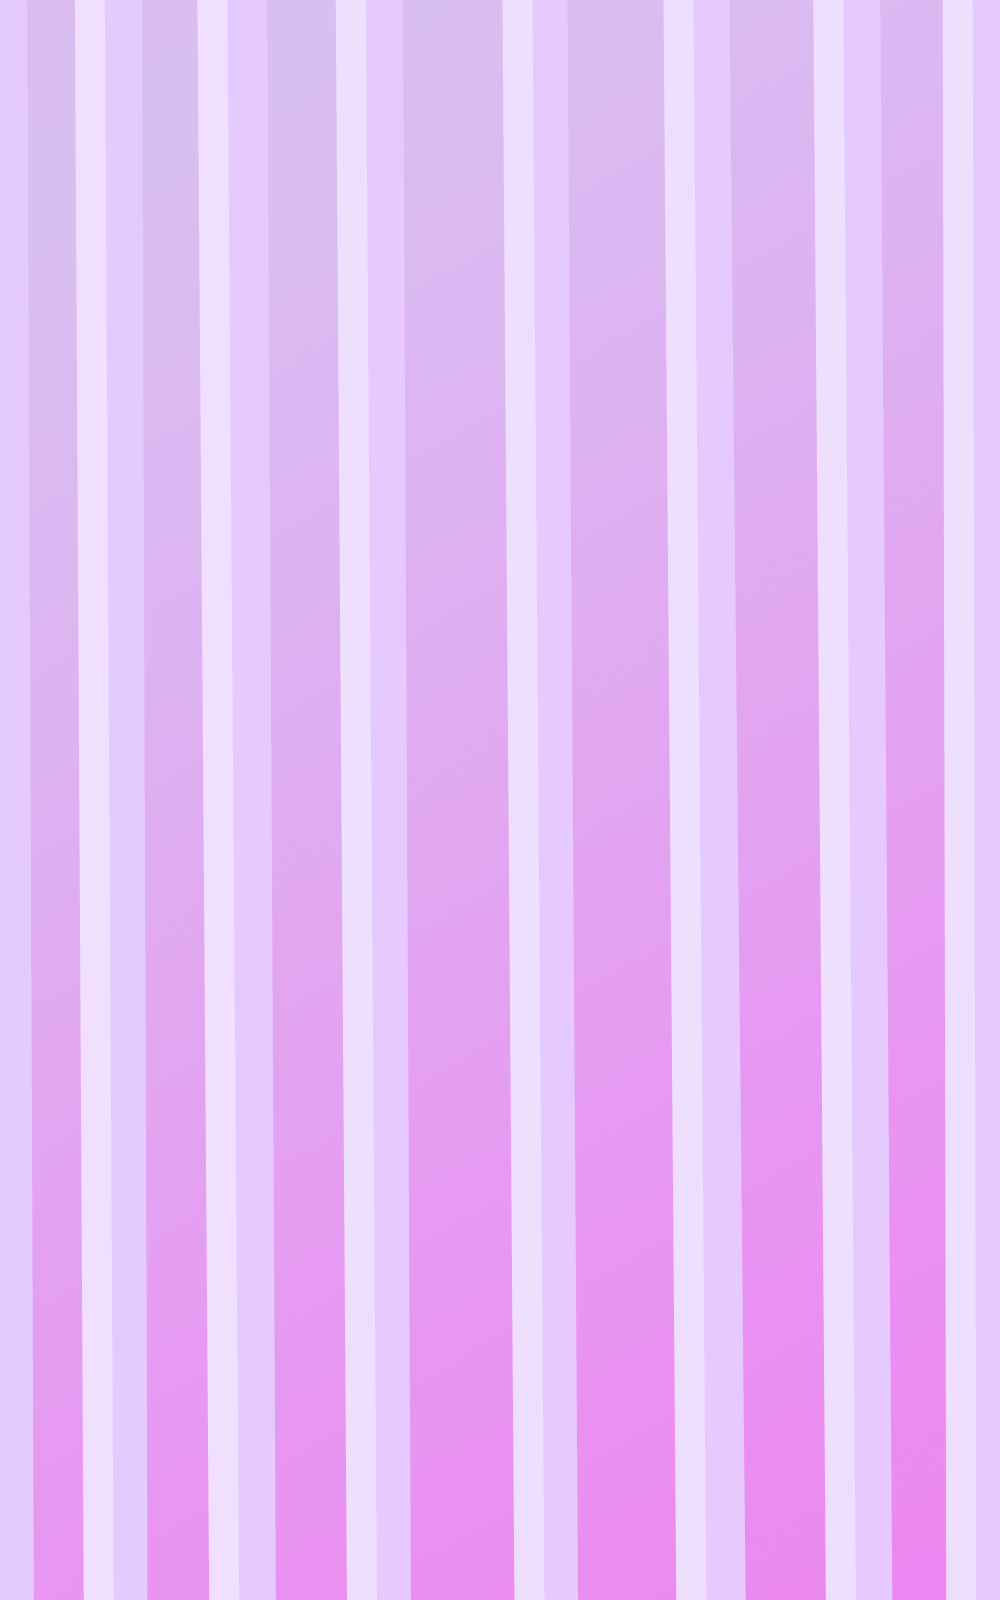 Purple stripes custom background by lonehuntress